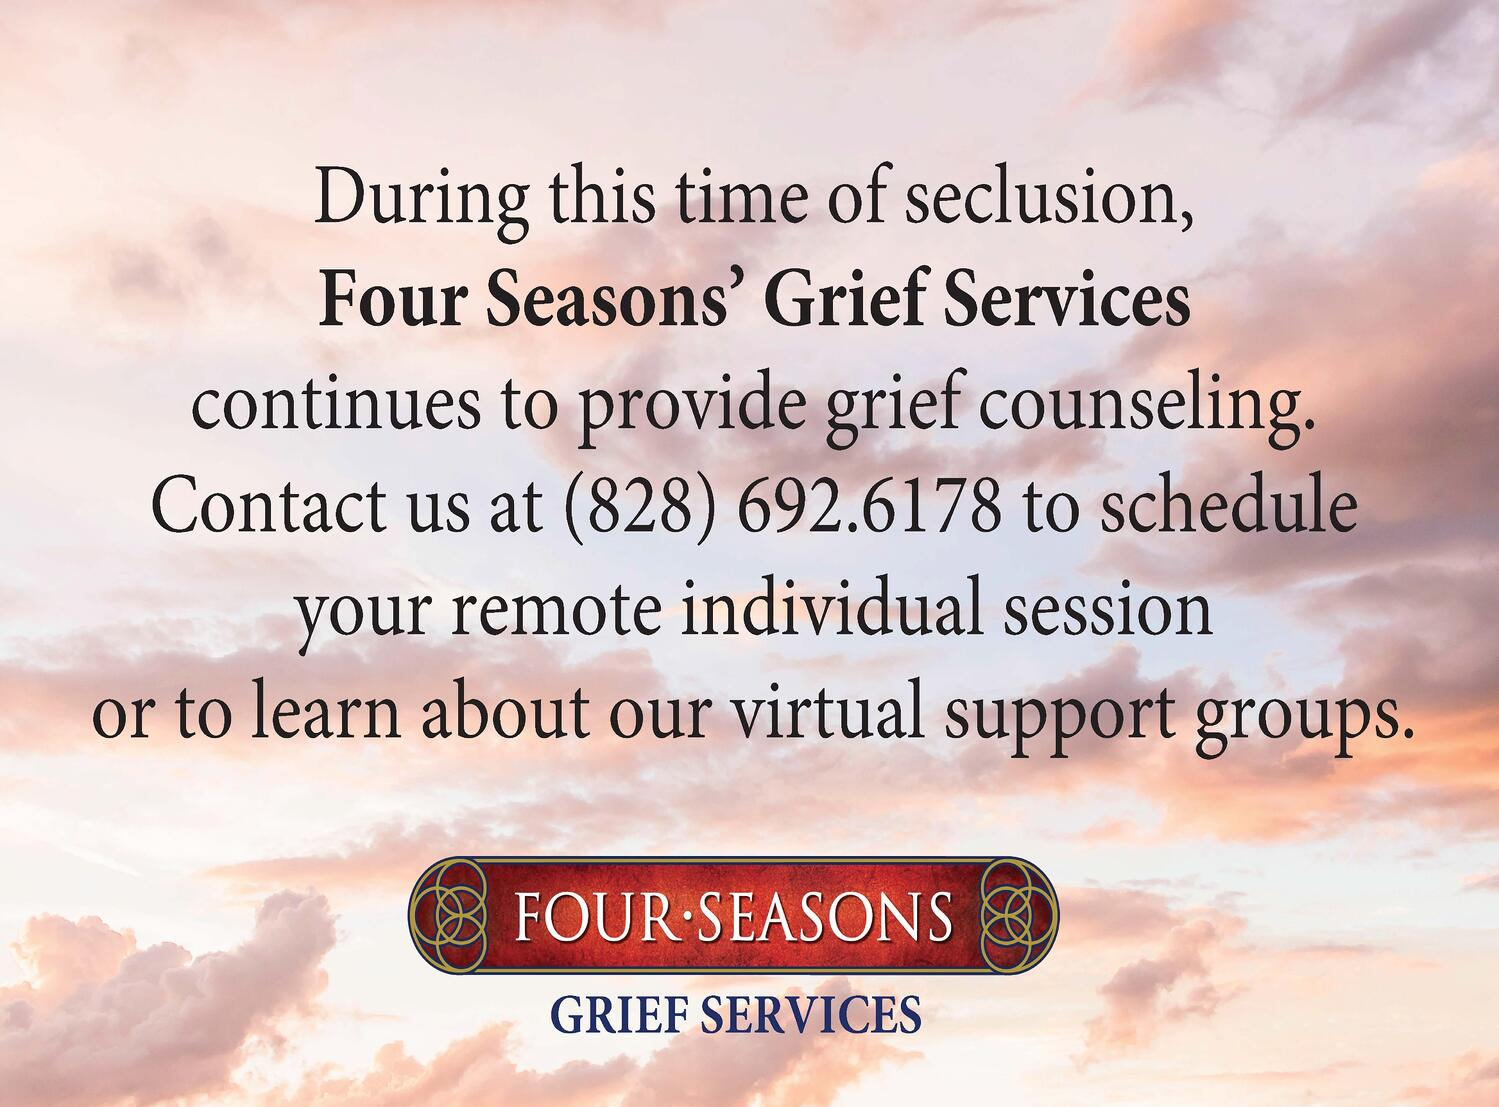 Grief Services March 2020 Message